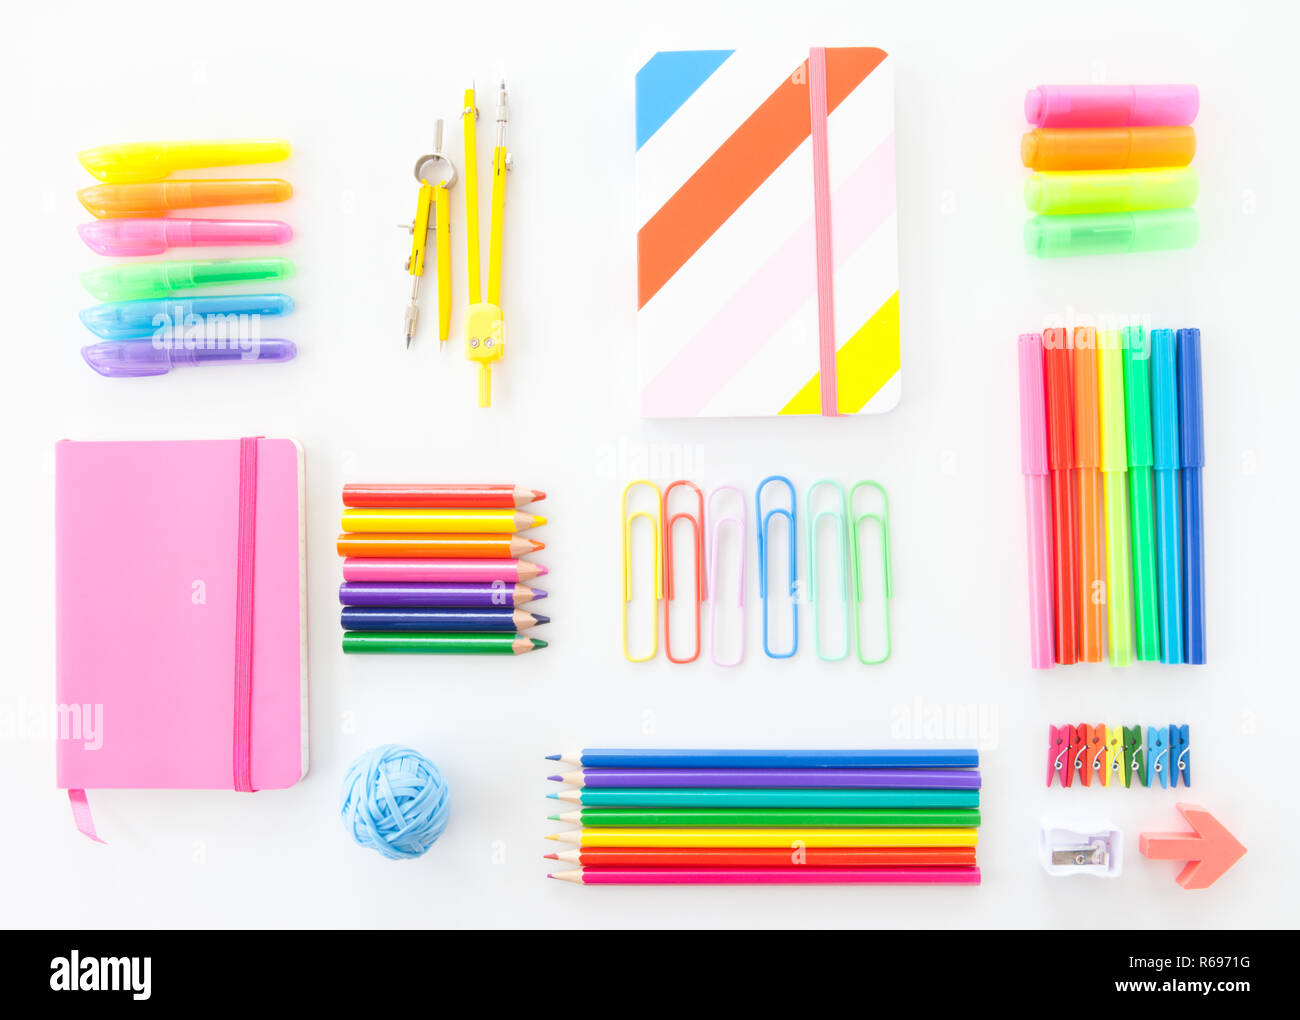 Colorful Office Supplies - Stock Image